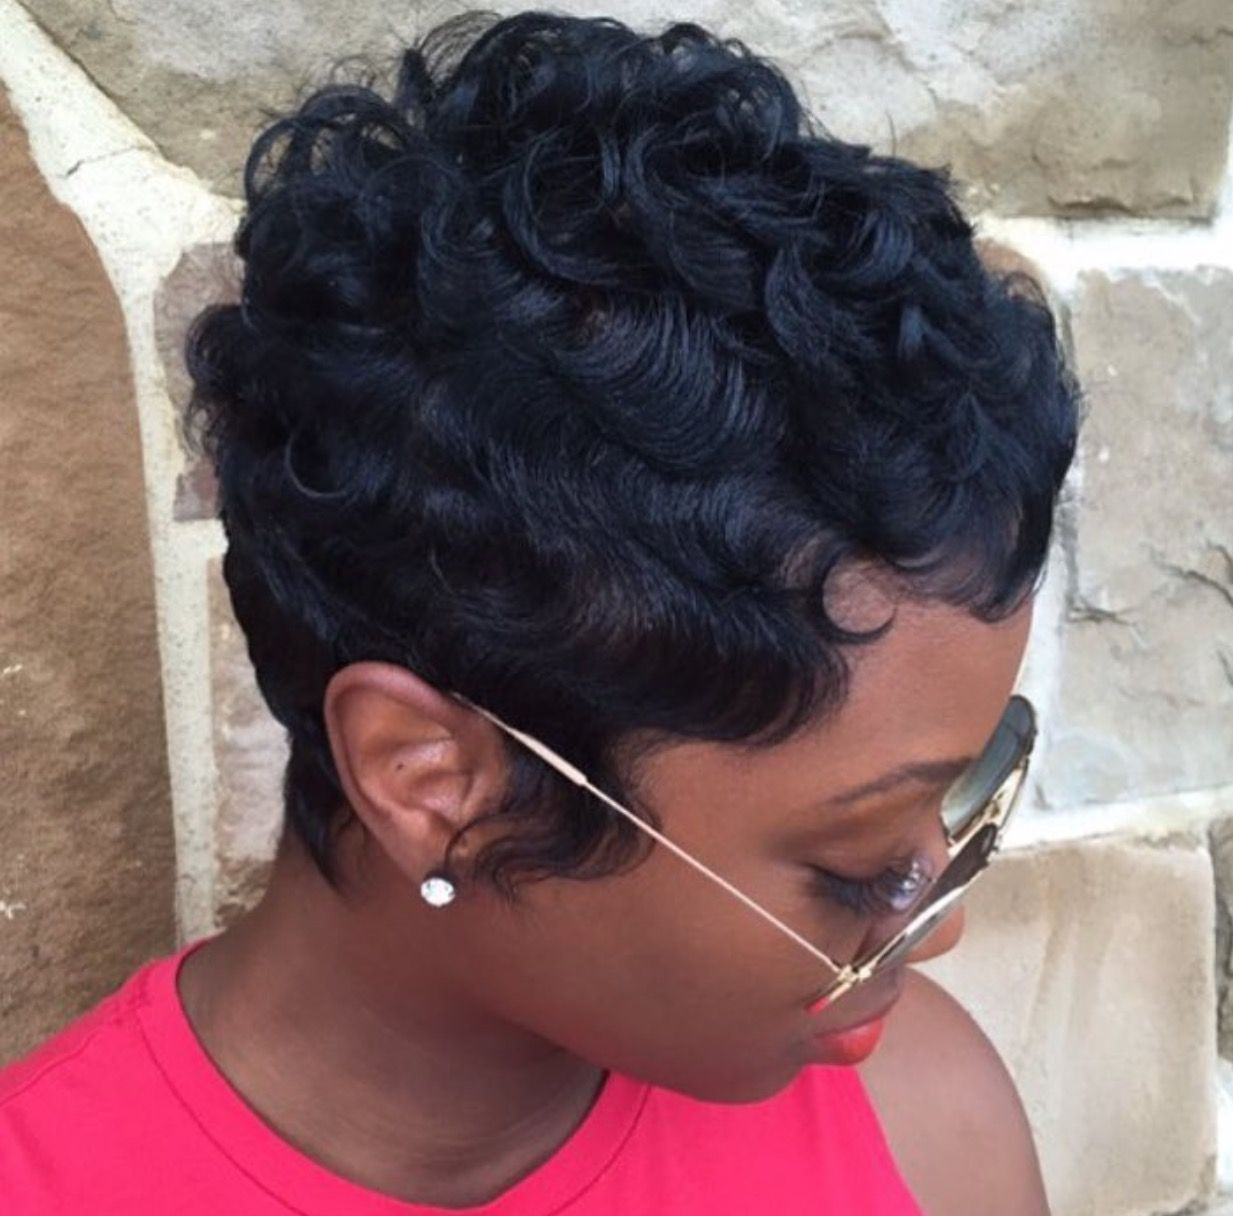 Pin By Rita Ingram On Hair Hair Styles Short Hair Styles Natural Hair Styles